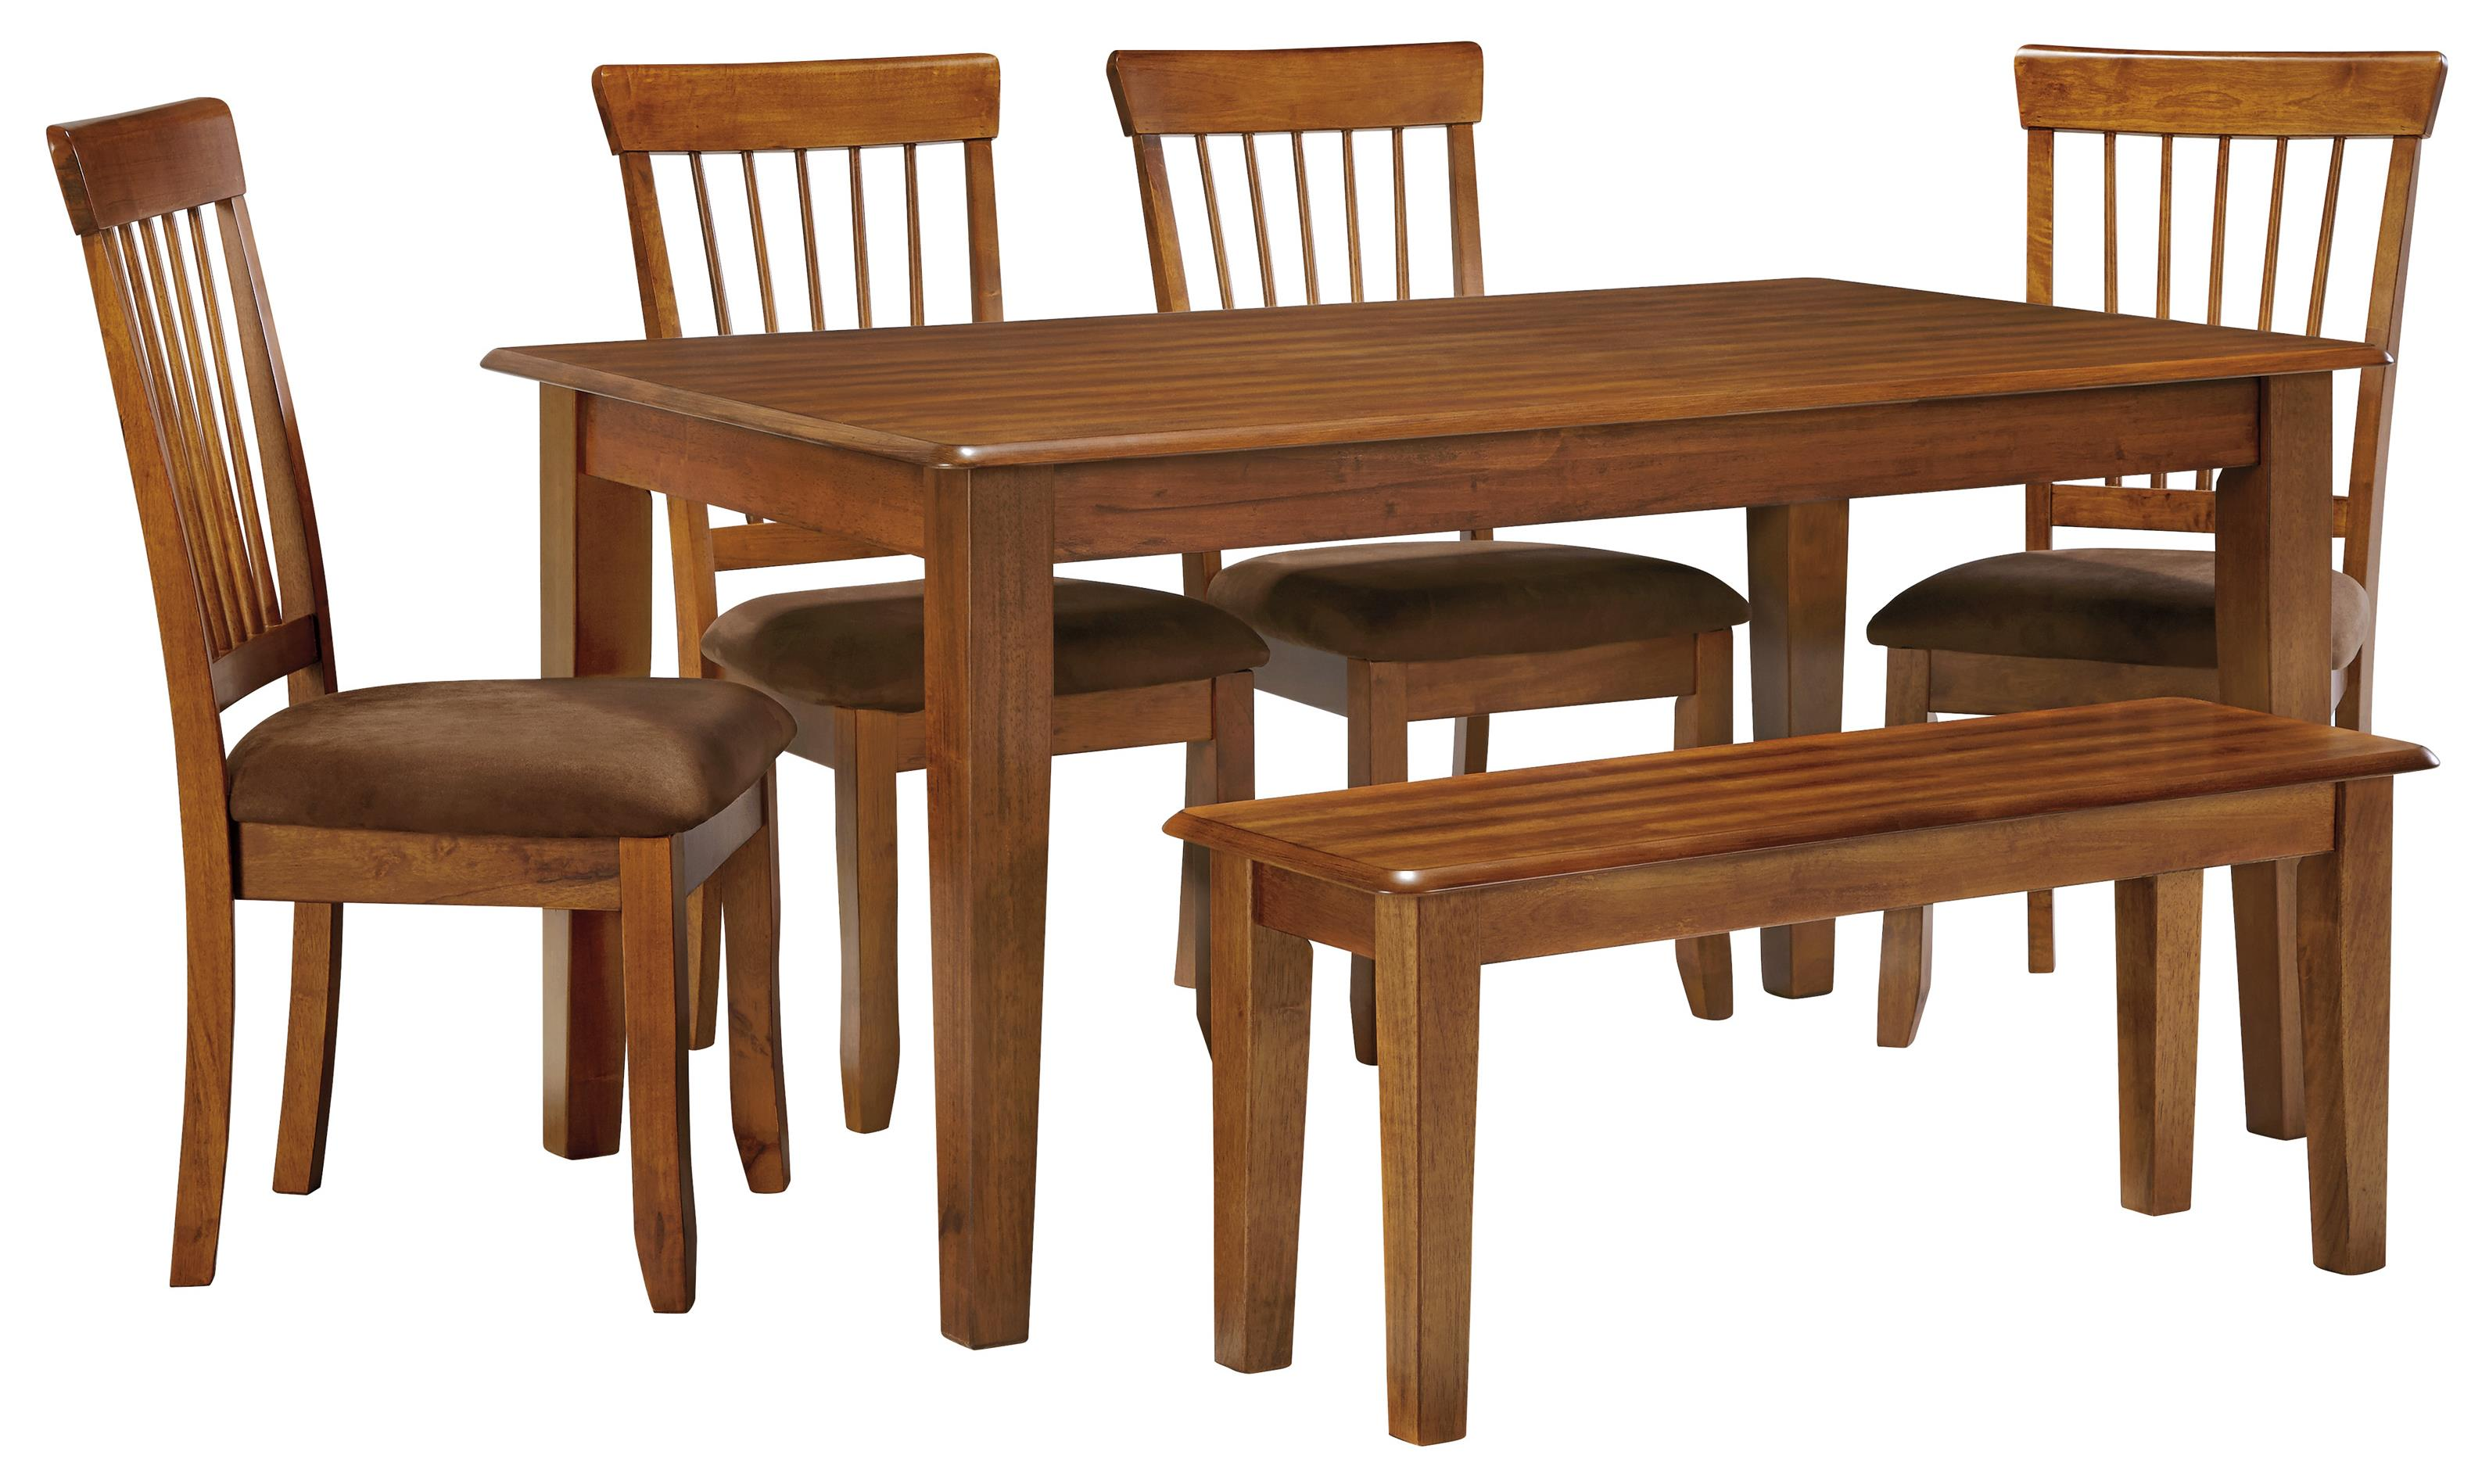 Ashley Chairs Barista 36 X 60 Table With 4 Chairs Bench By Ashley Furniture At John V Schultz Furniture